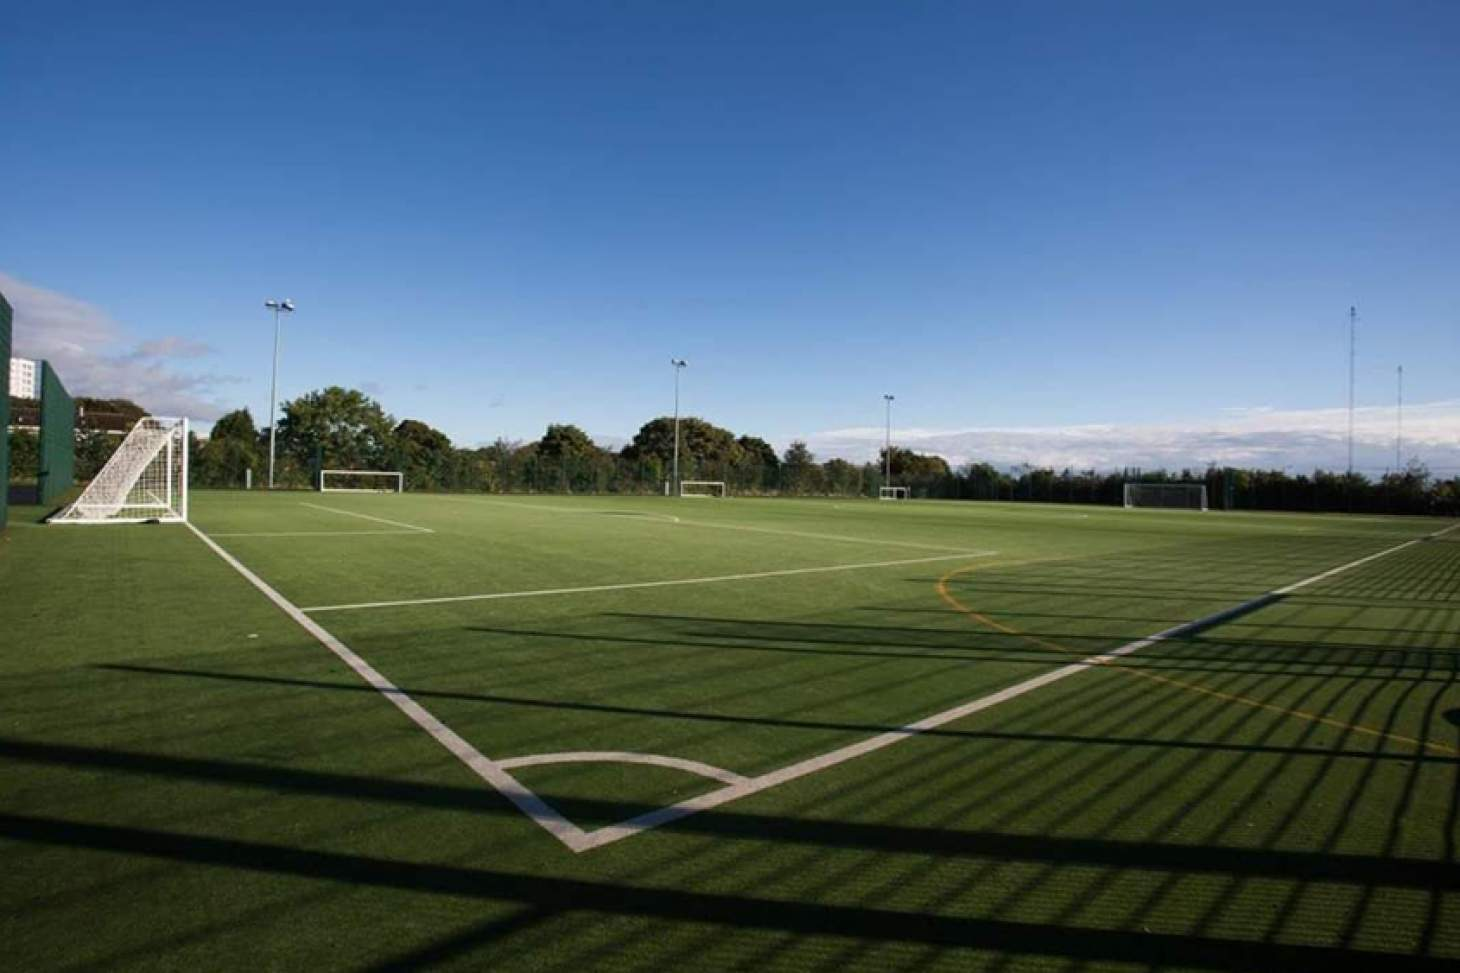 3D Health and Fitness Cardinal Hume 5 a side | Astroturf football pitch